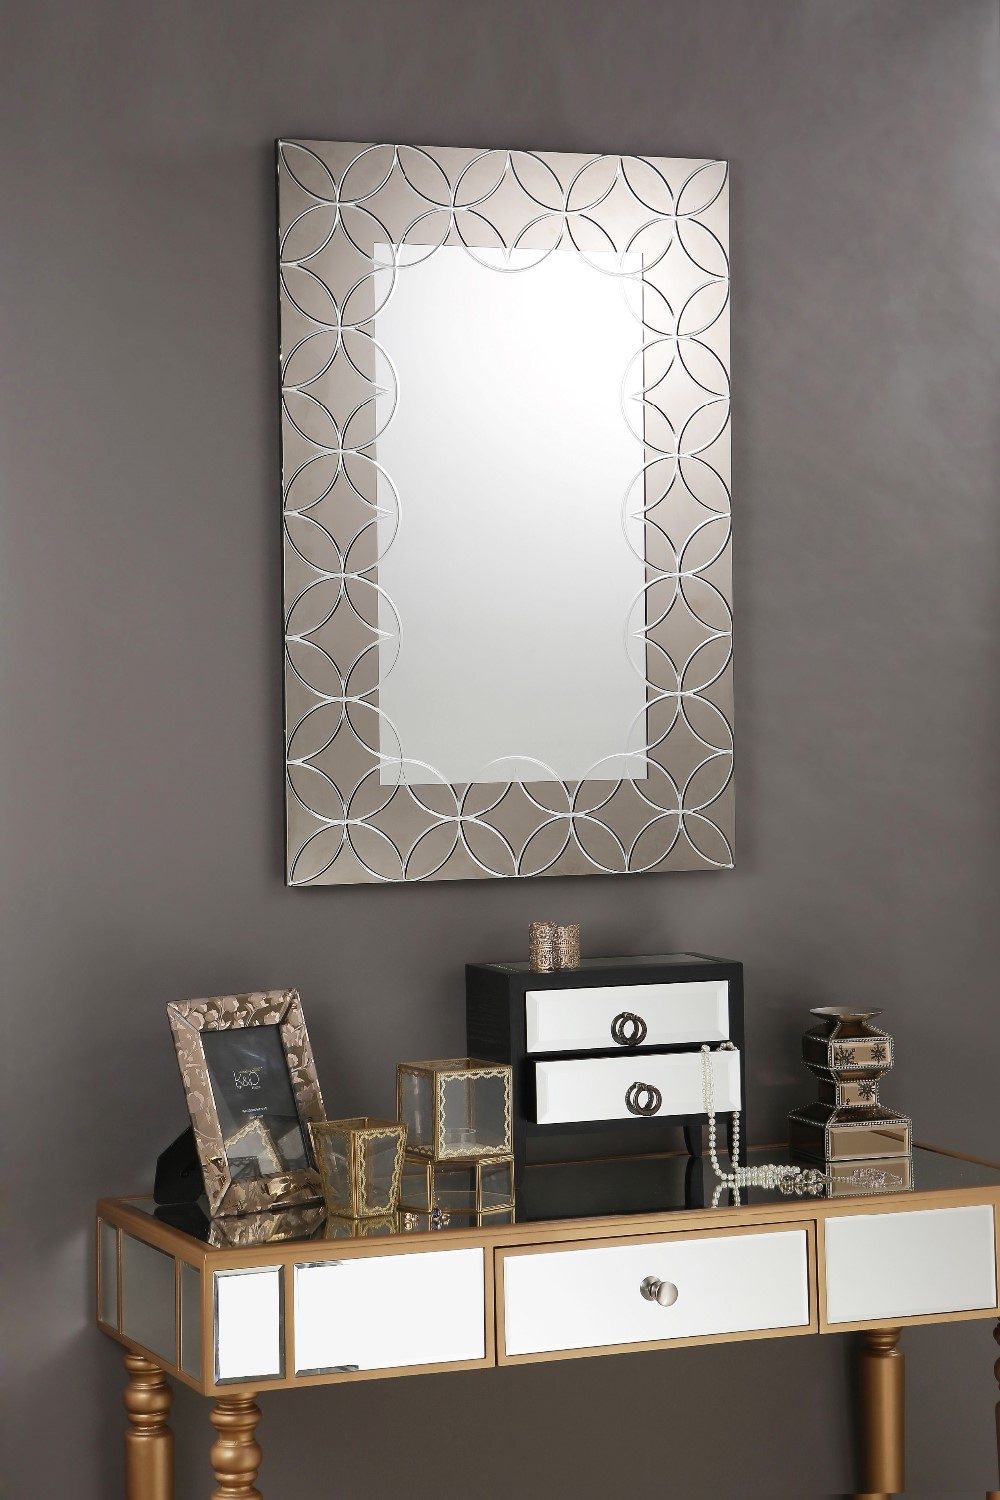 Argent Crystal Engraving Etched Bathroom Wall Decorative Mirror Buy Bathroom Mirror Wall